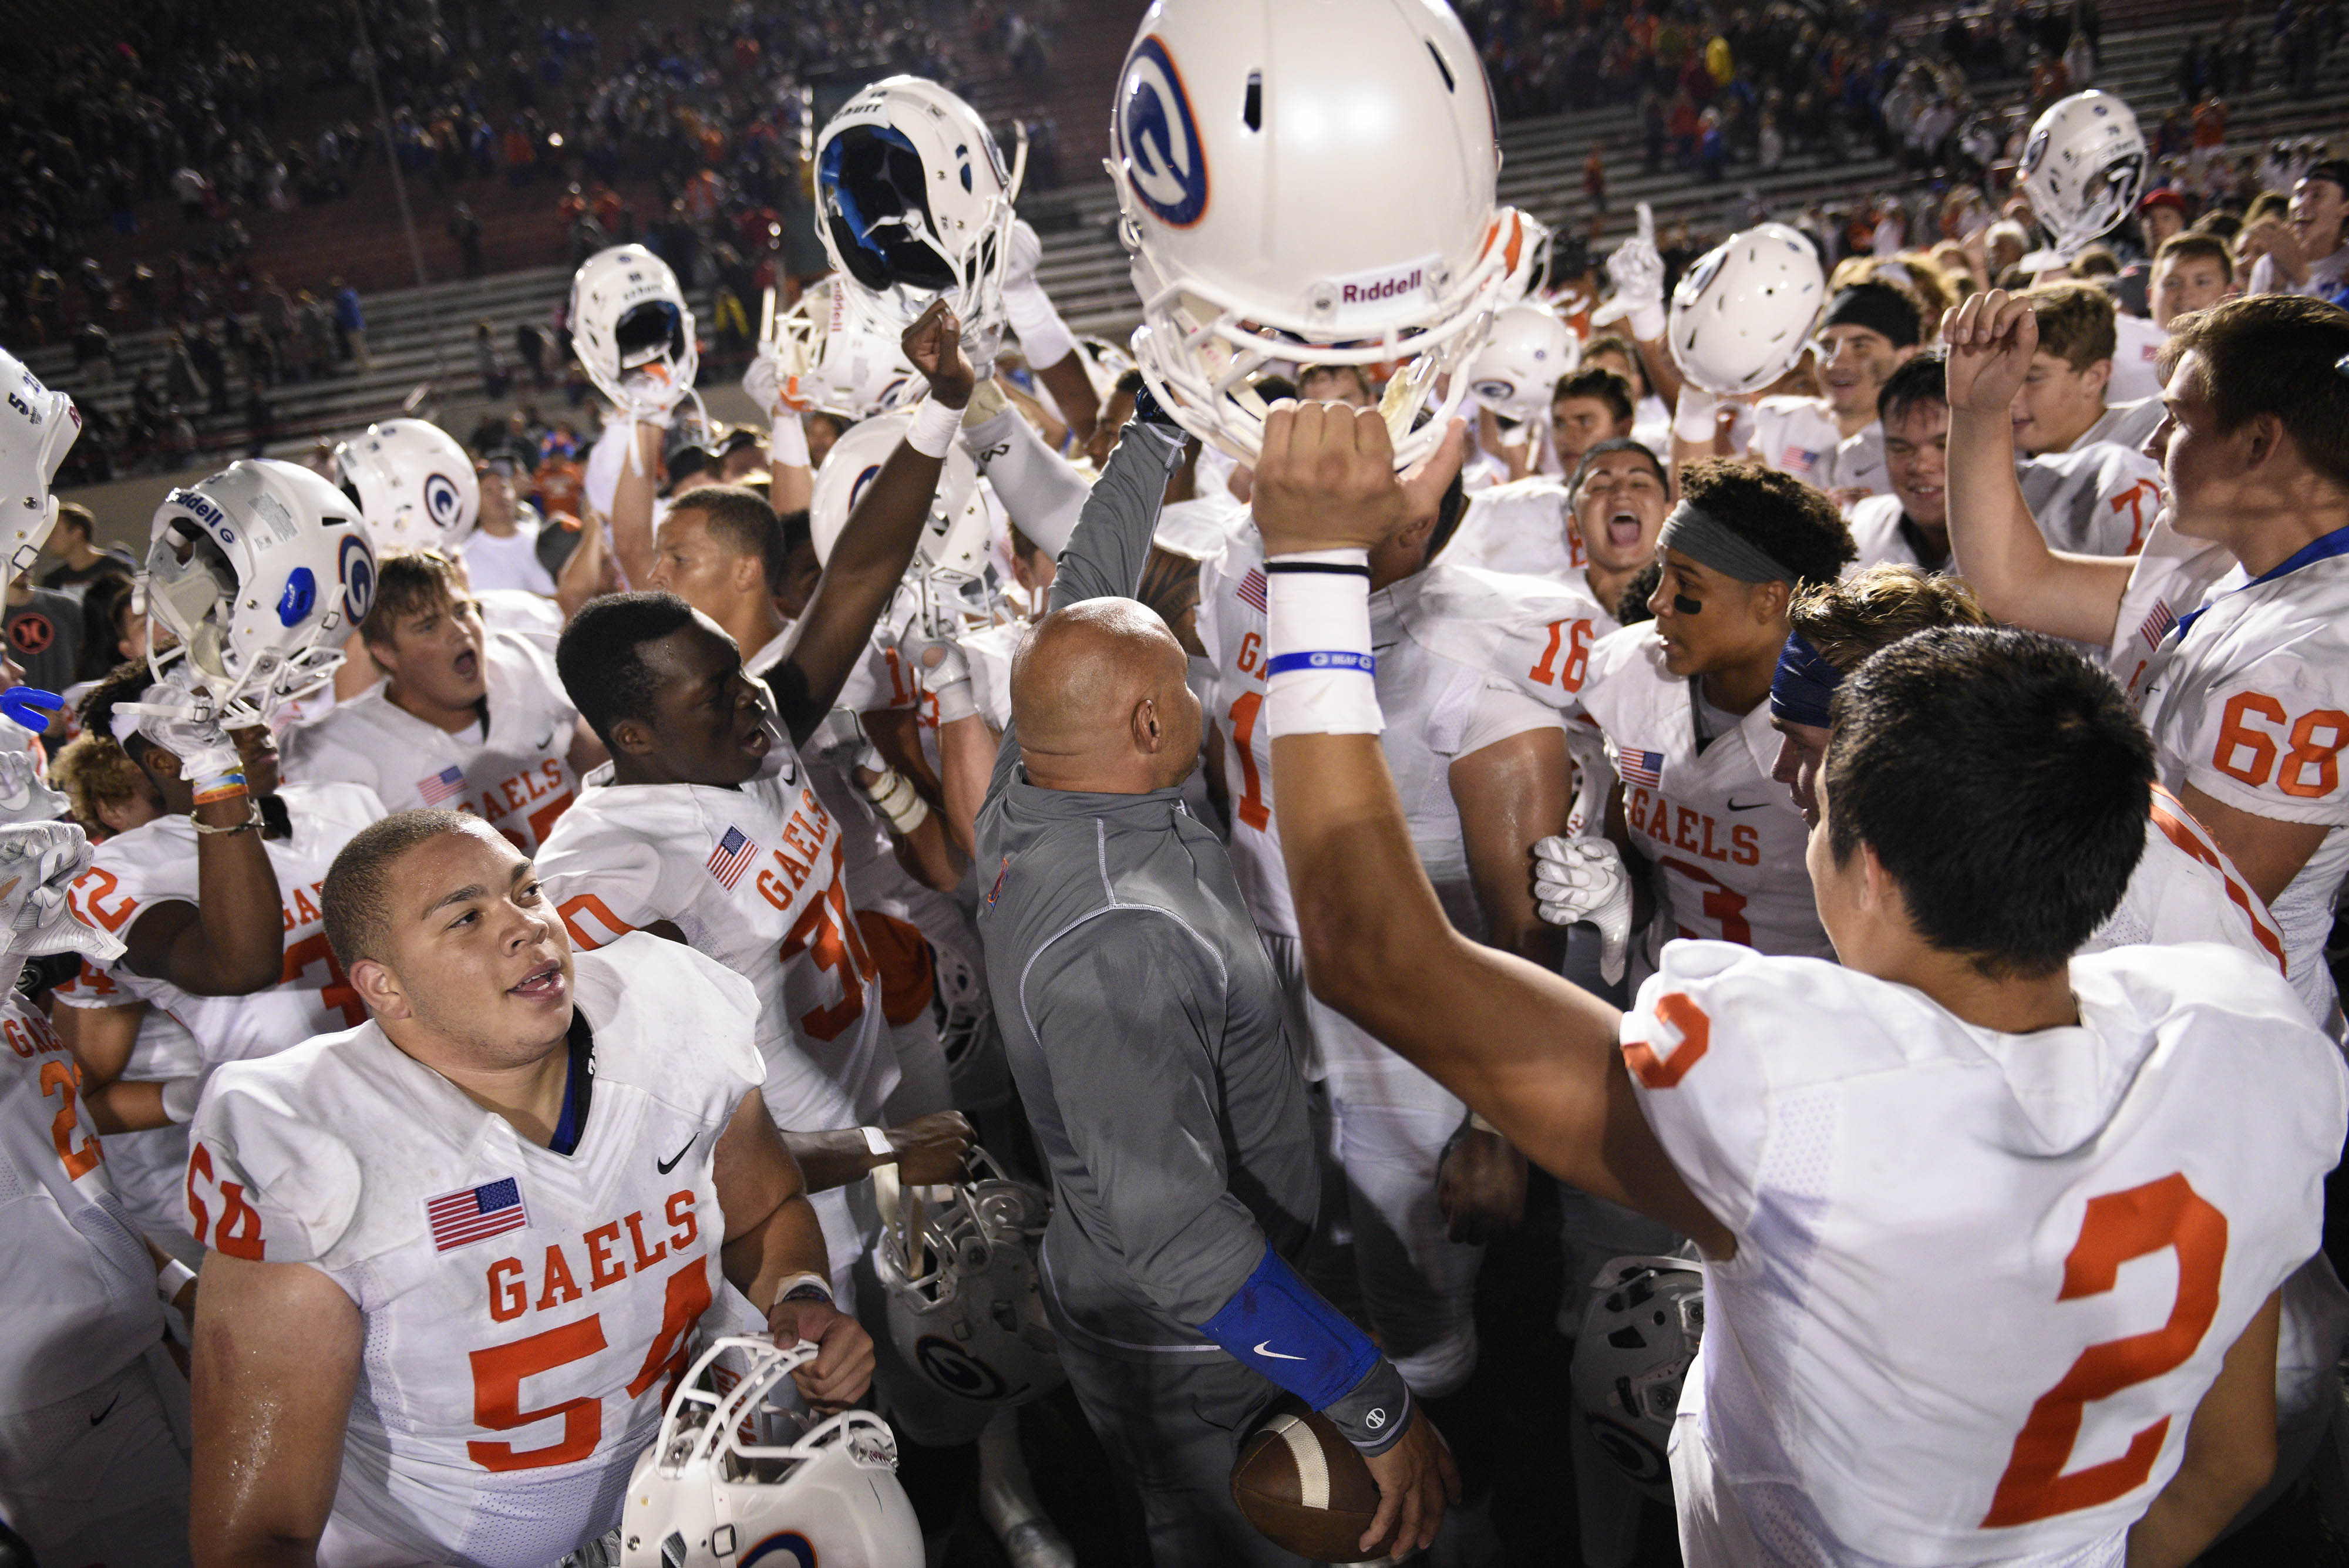 Sep 9, 2016; Long Beach, CA, USA; The Bishop Gorman Gaels celebrate with head coach Kenny Sanchez after the game against the St. John Bosco Braves at Veterans Stadium. The Bishop Gorman Gaels won 35-20. Mandatory Credit: Kelvin Kuo-USA TODAY Sports ORG XMIT: USATSI-326218 ORIG FILE ID: 20160909_kek_ak6_011.JPG